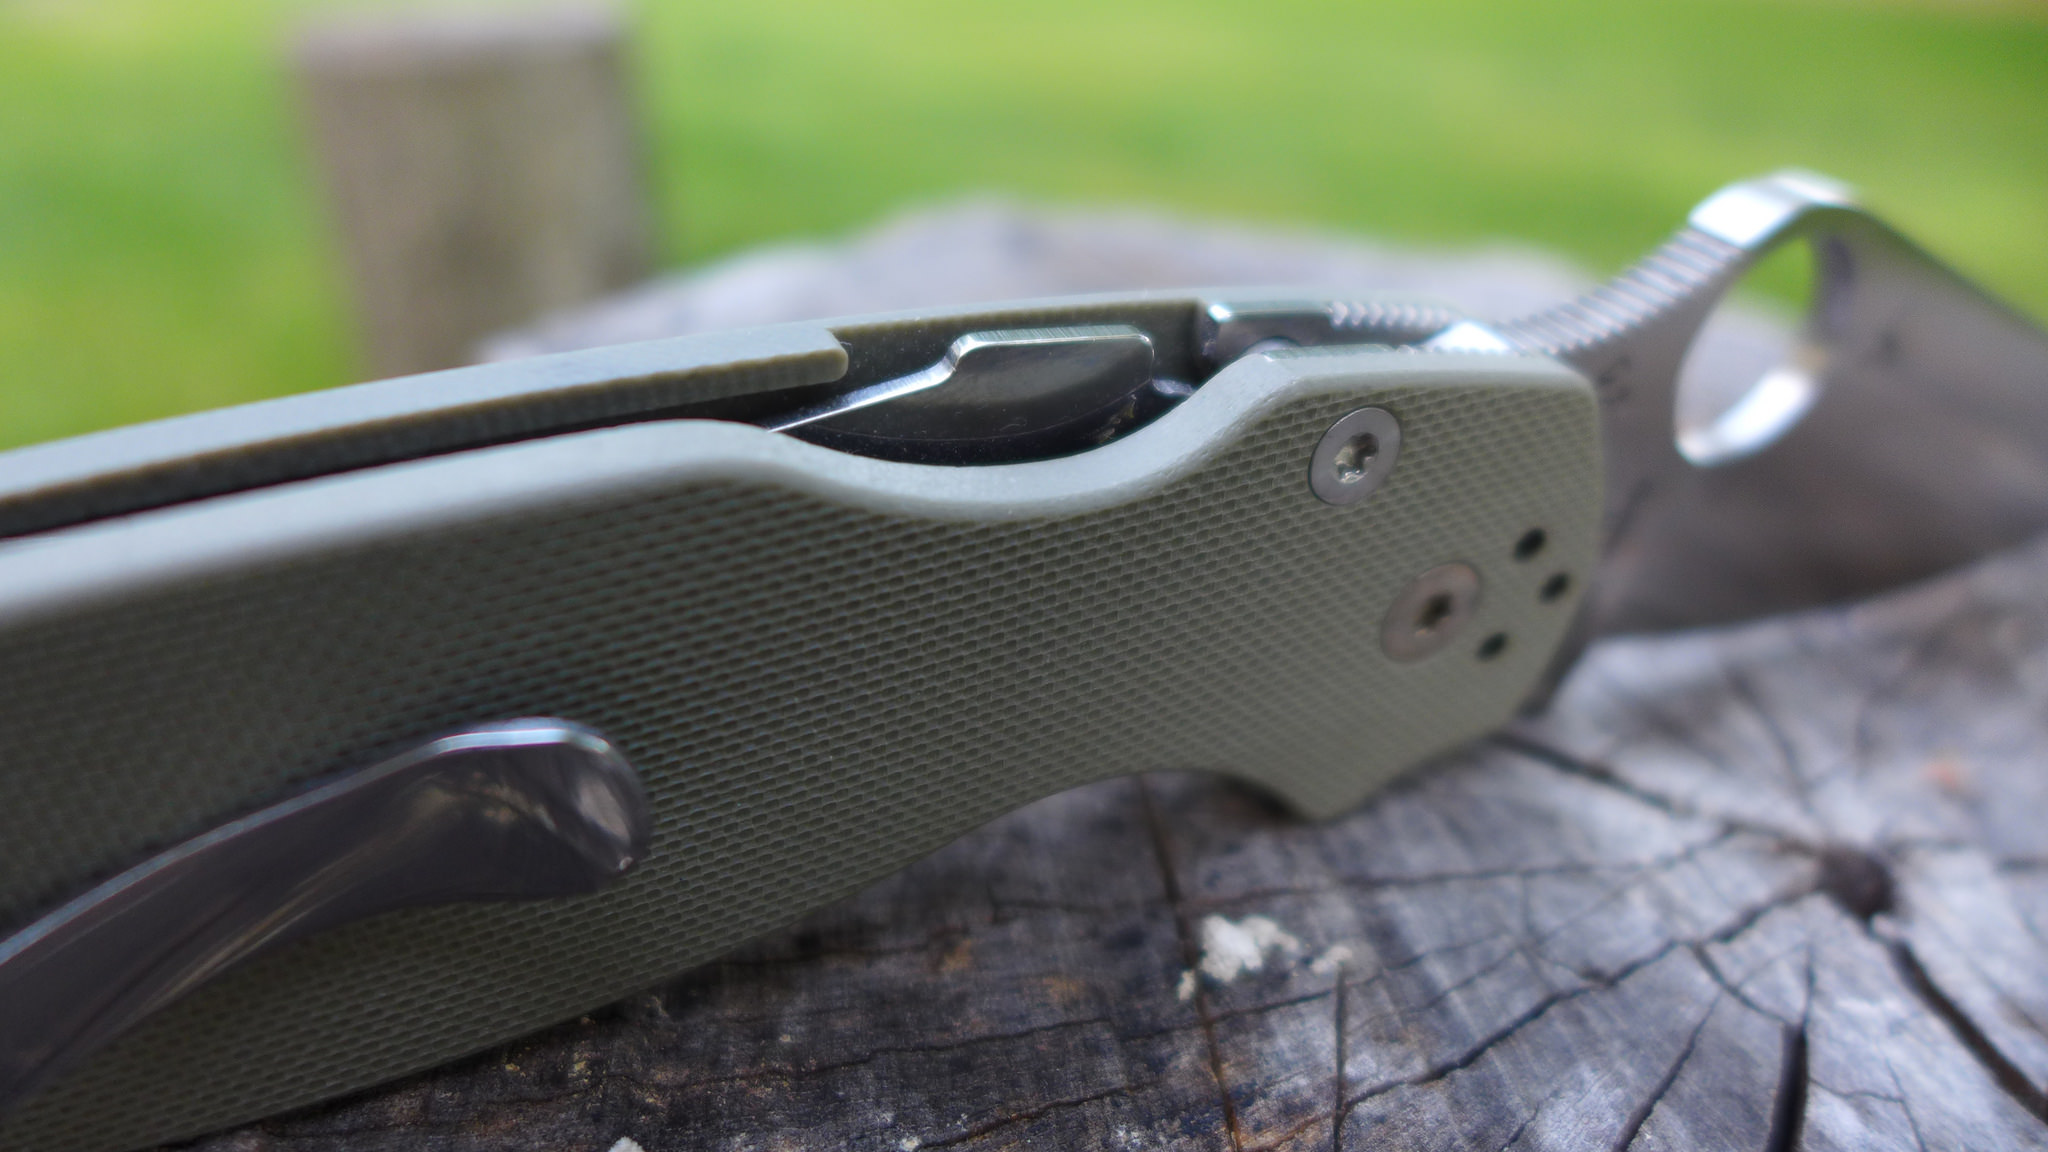 Best 'Do It All' Pocket Knife | GearJunkie